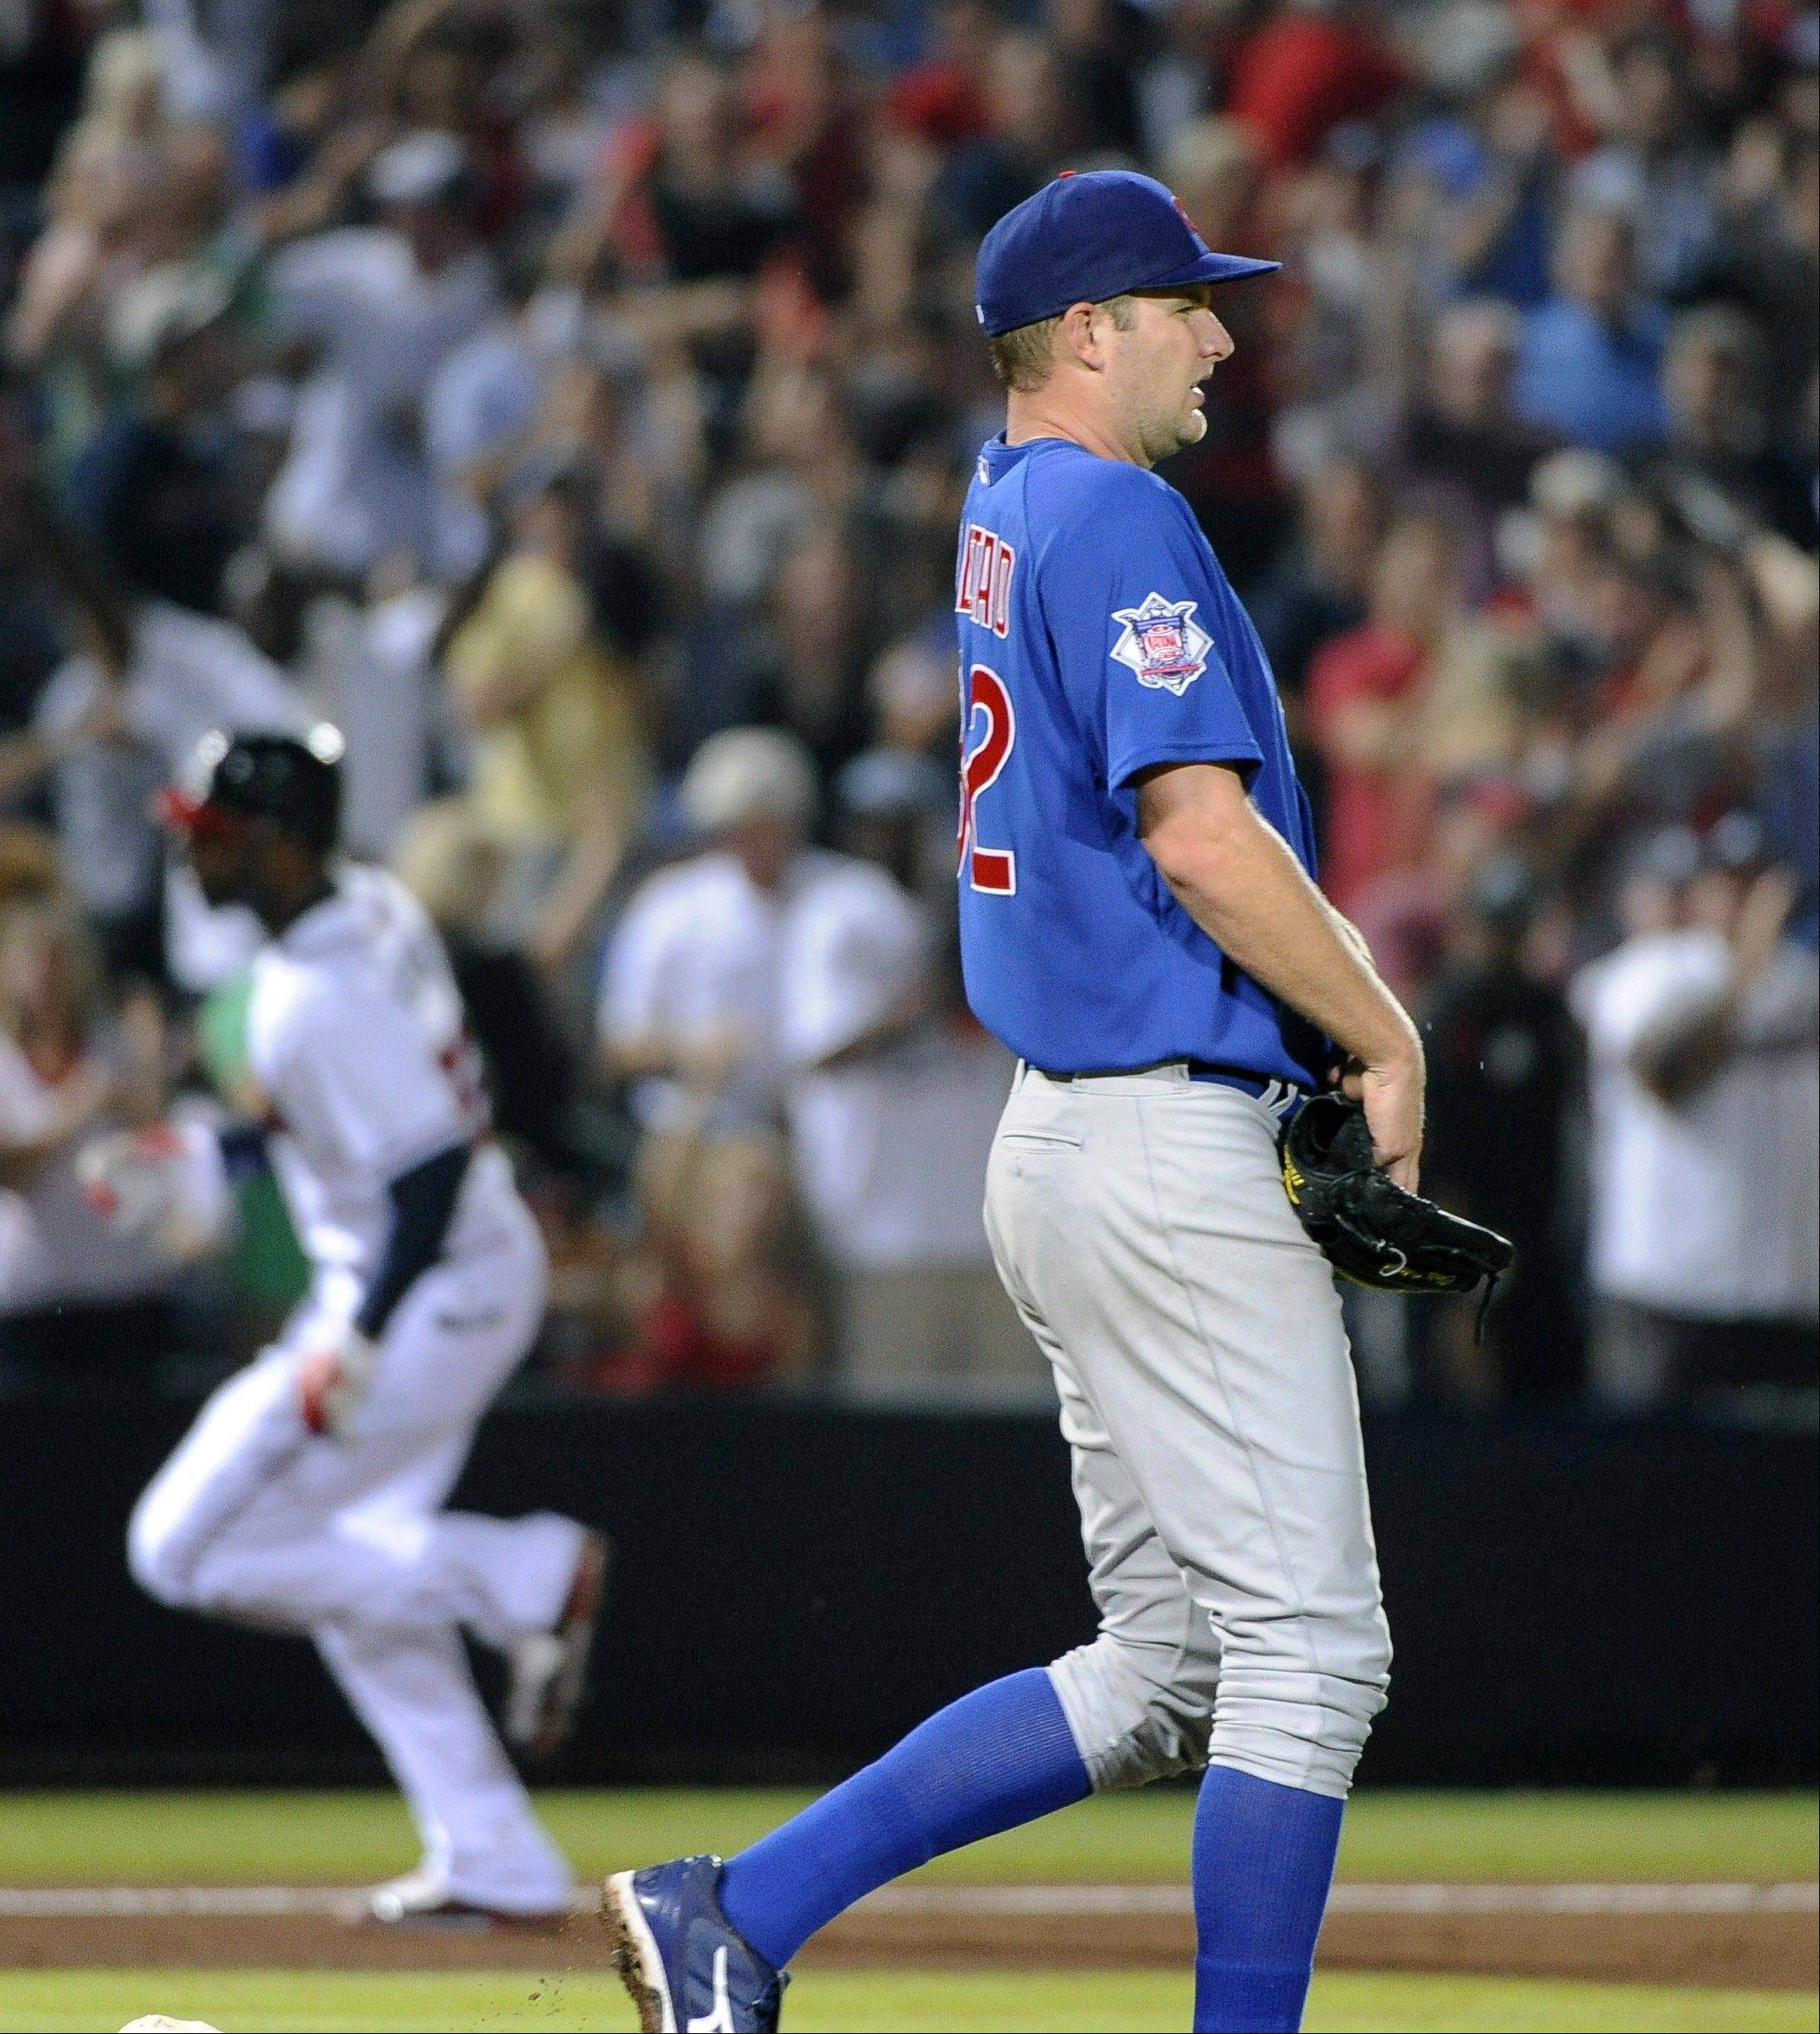 Cubs starting pitcher Chris Volstad walks near the mound Tuesday after giving up a home run to Atlanta Braves right fielder Jason Heyward, rear, who rounds third base during the fifth inning at Turner Field in Atlanta.